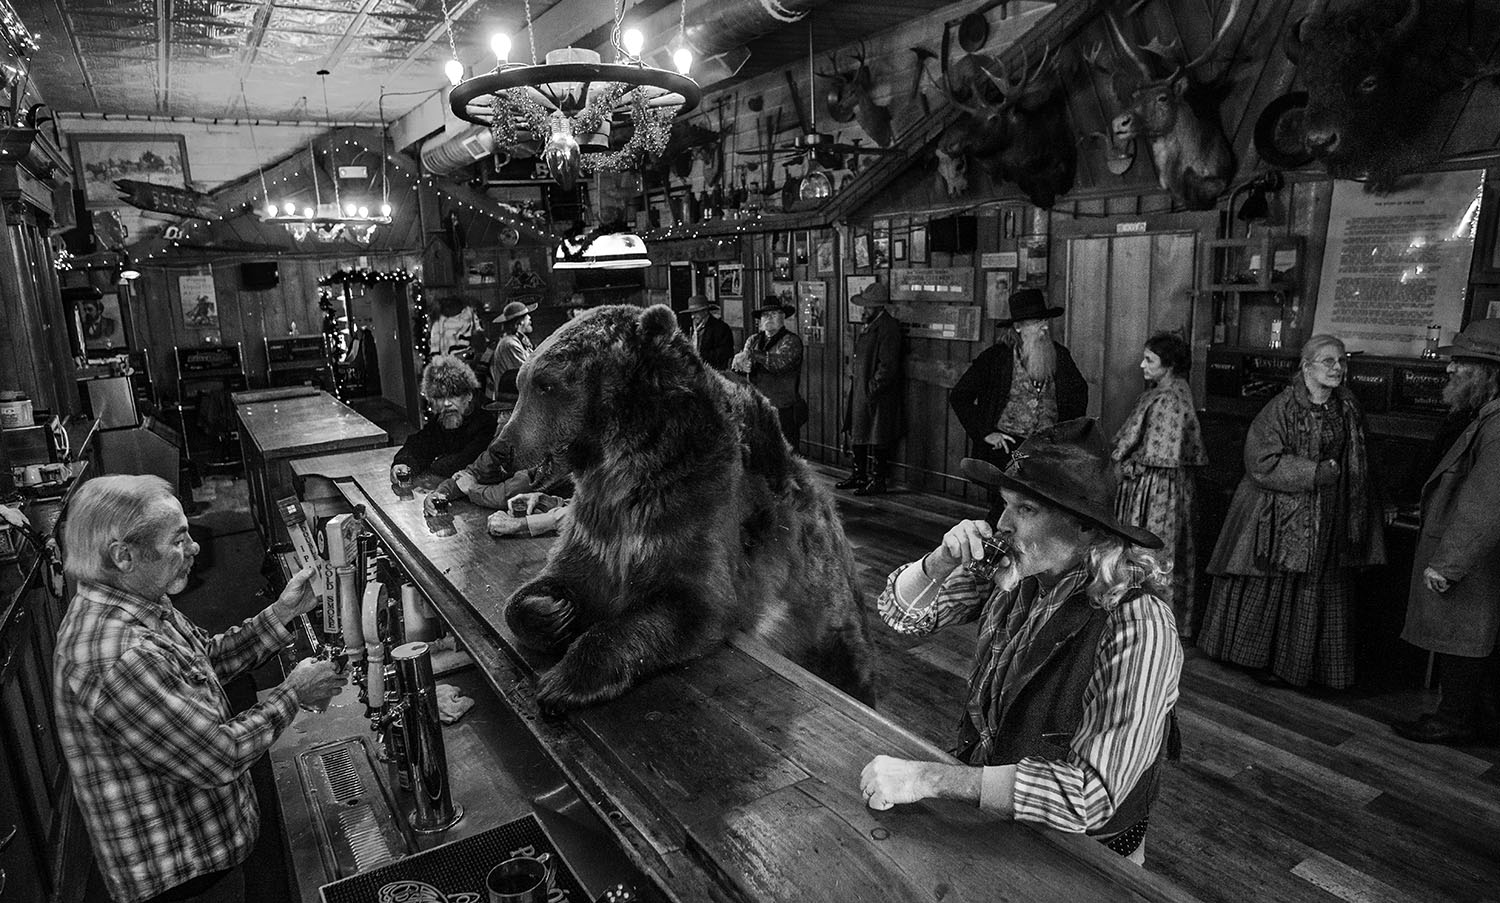 A Bear Walks Into a Bar by David Yarrow